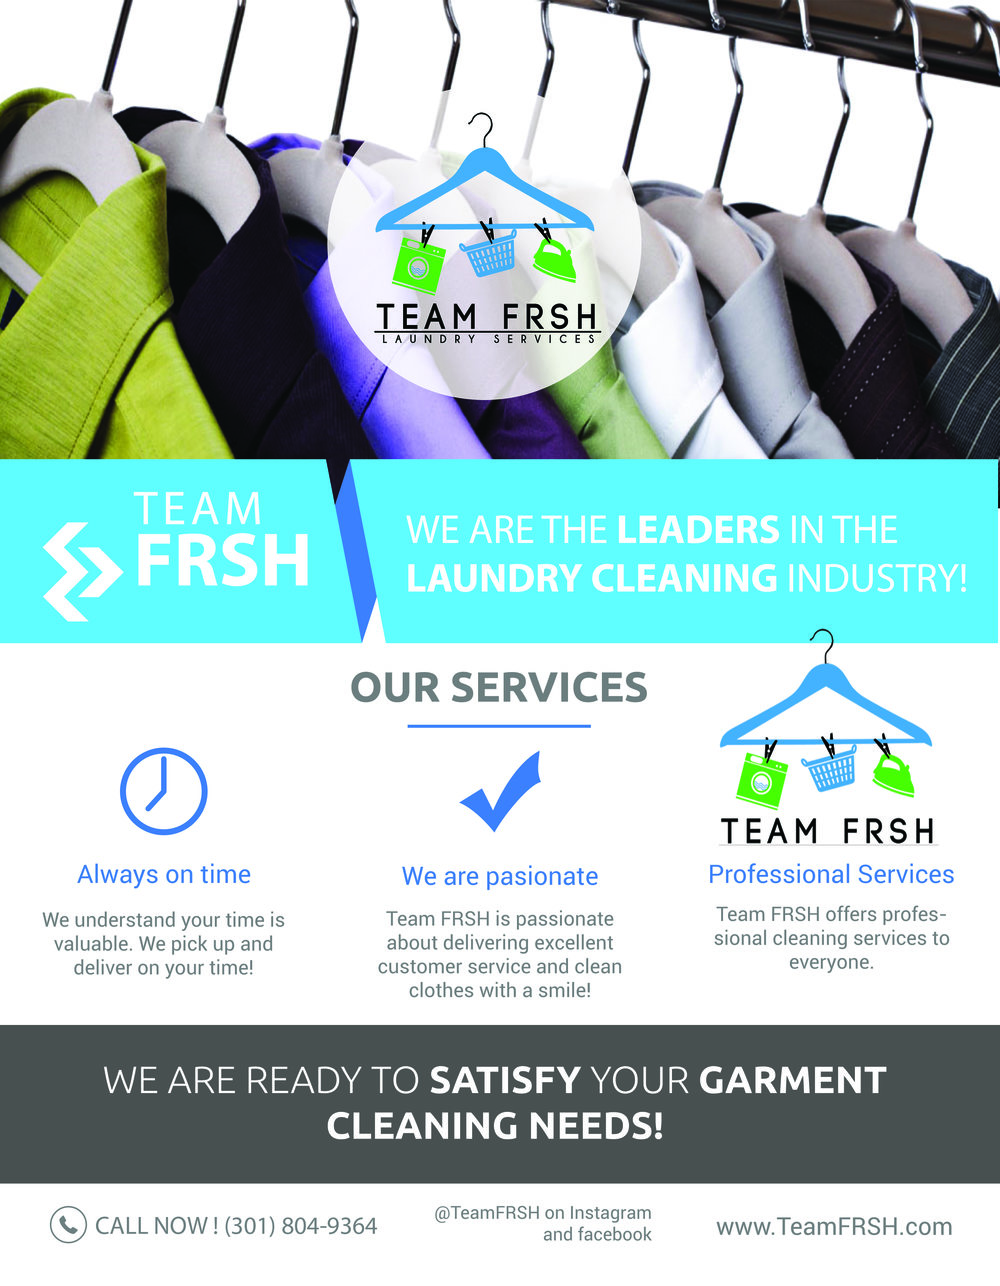 TeamFRSH.flyer1.jpg